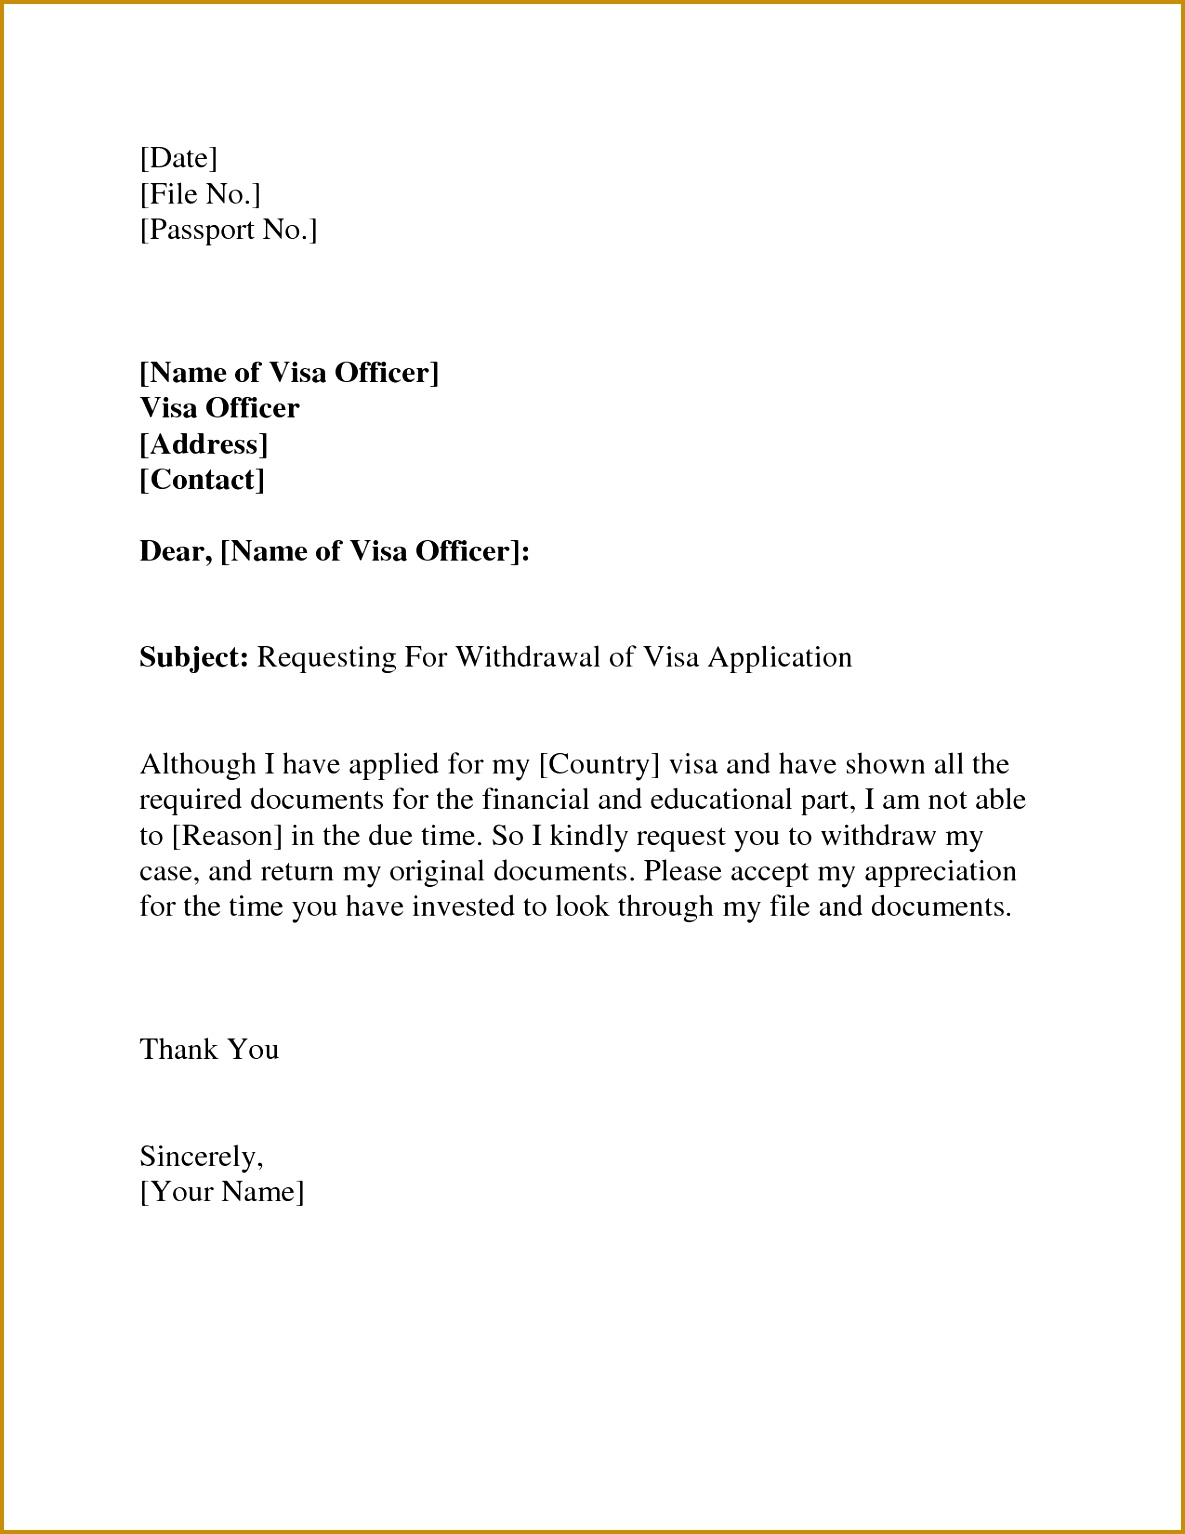 Visa Withdrawal Letter Request Letter Format Letter And EmailVisa Invitation Letter To A Friend Example Application Letter Sample 15341185